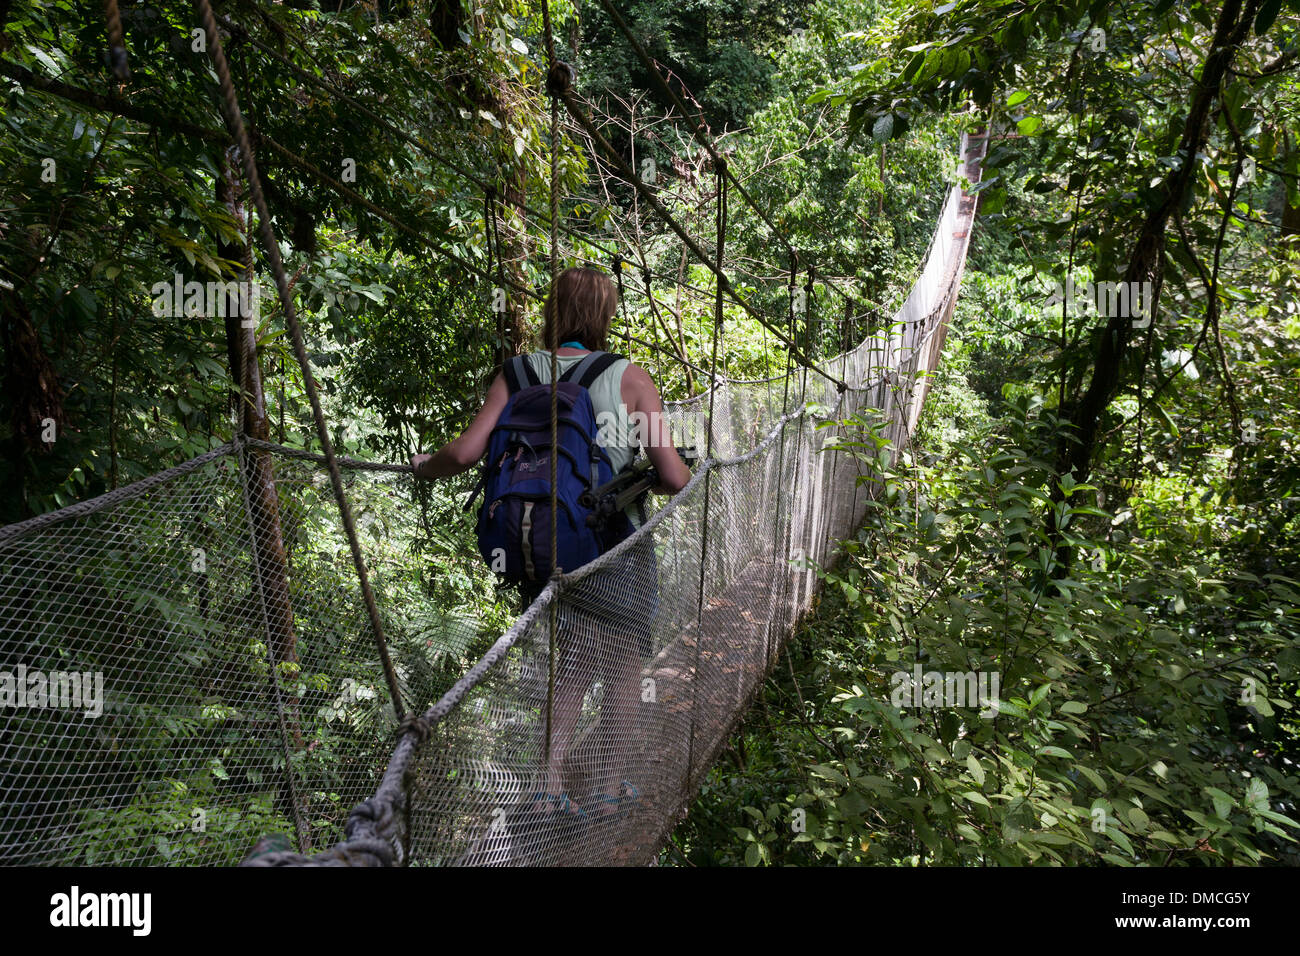 Suspended walkways in the forest canopy at the Rainmaker Conservation Project Costa Rica - Stock Image